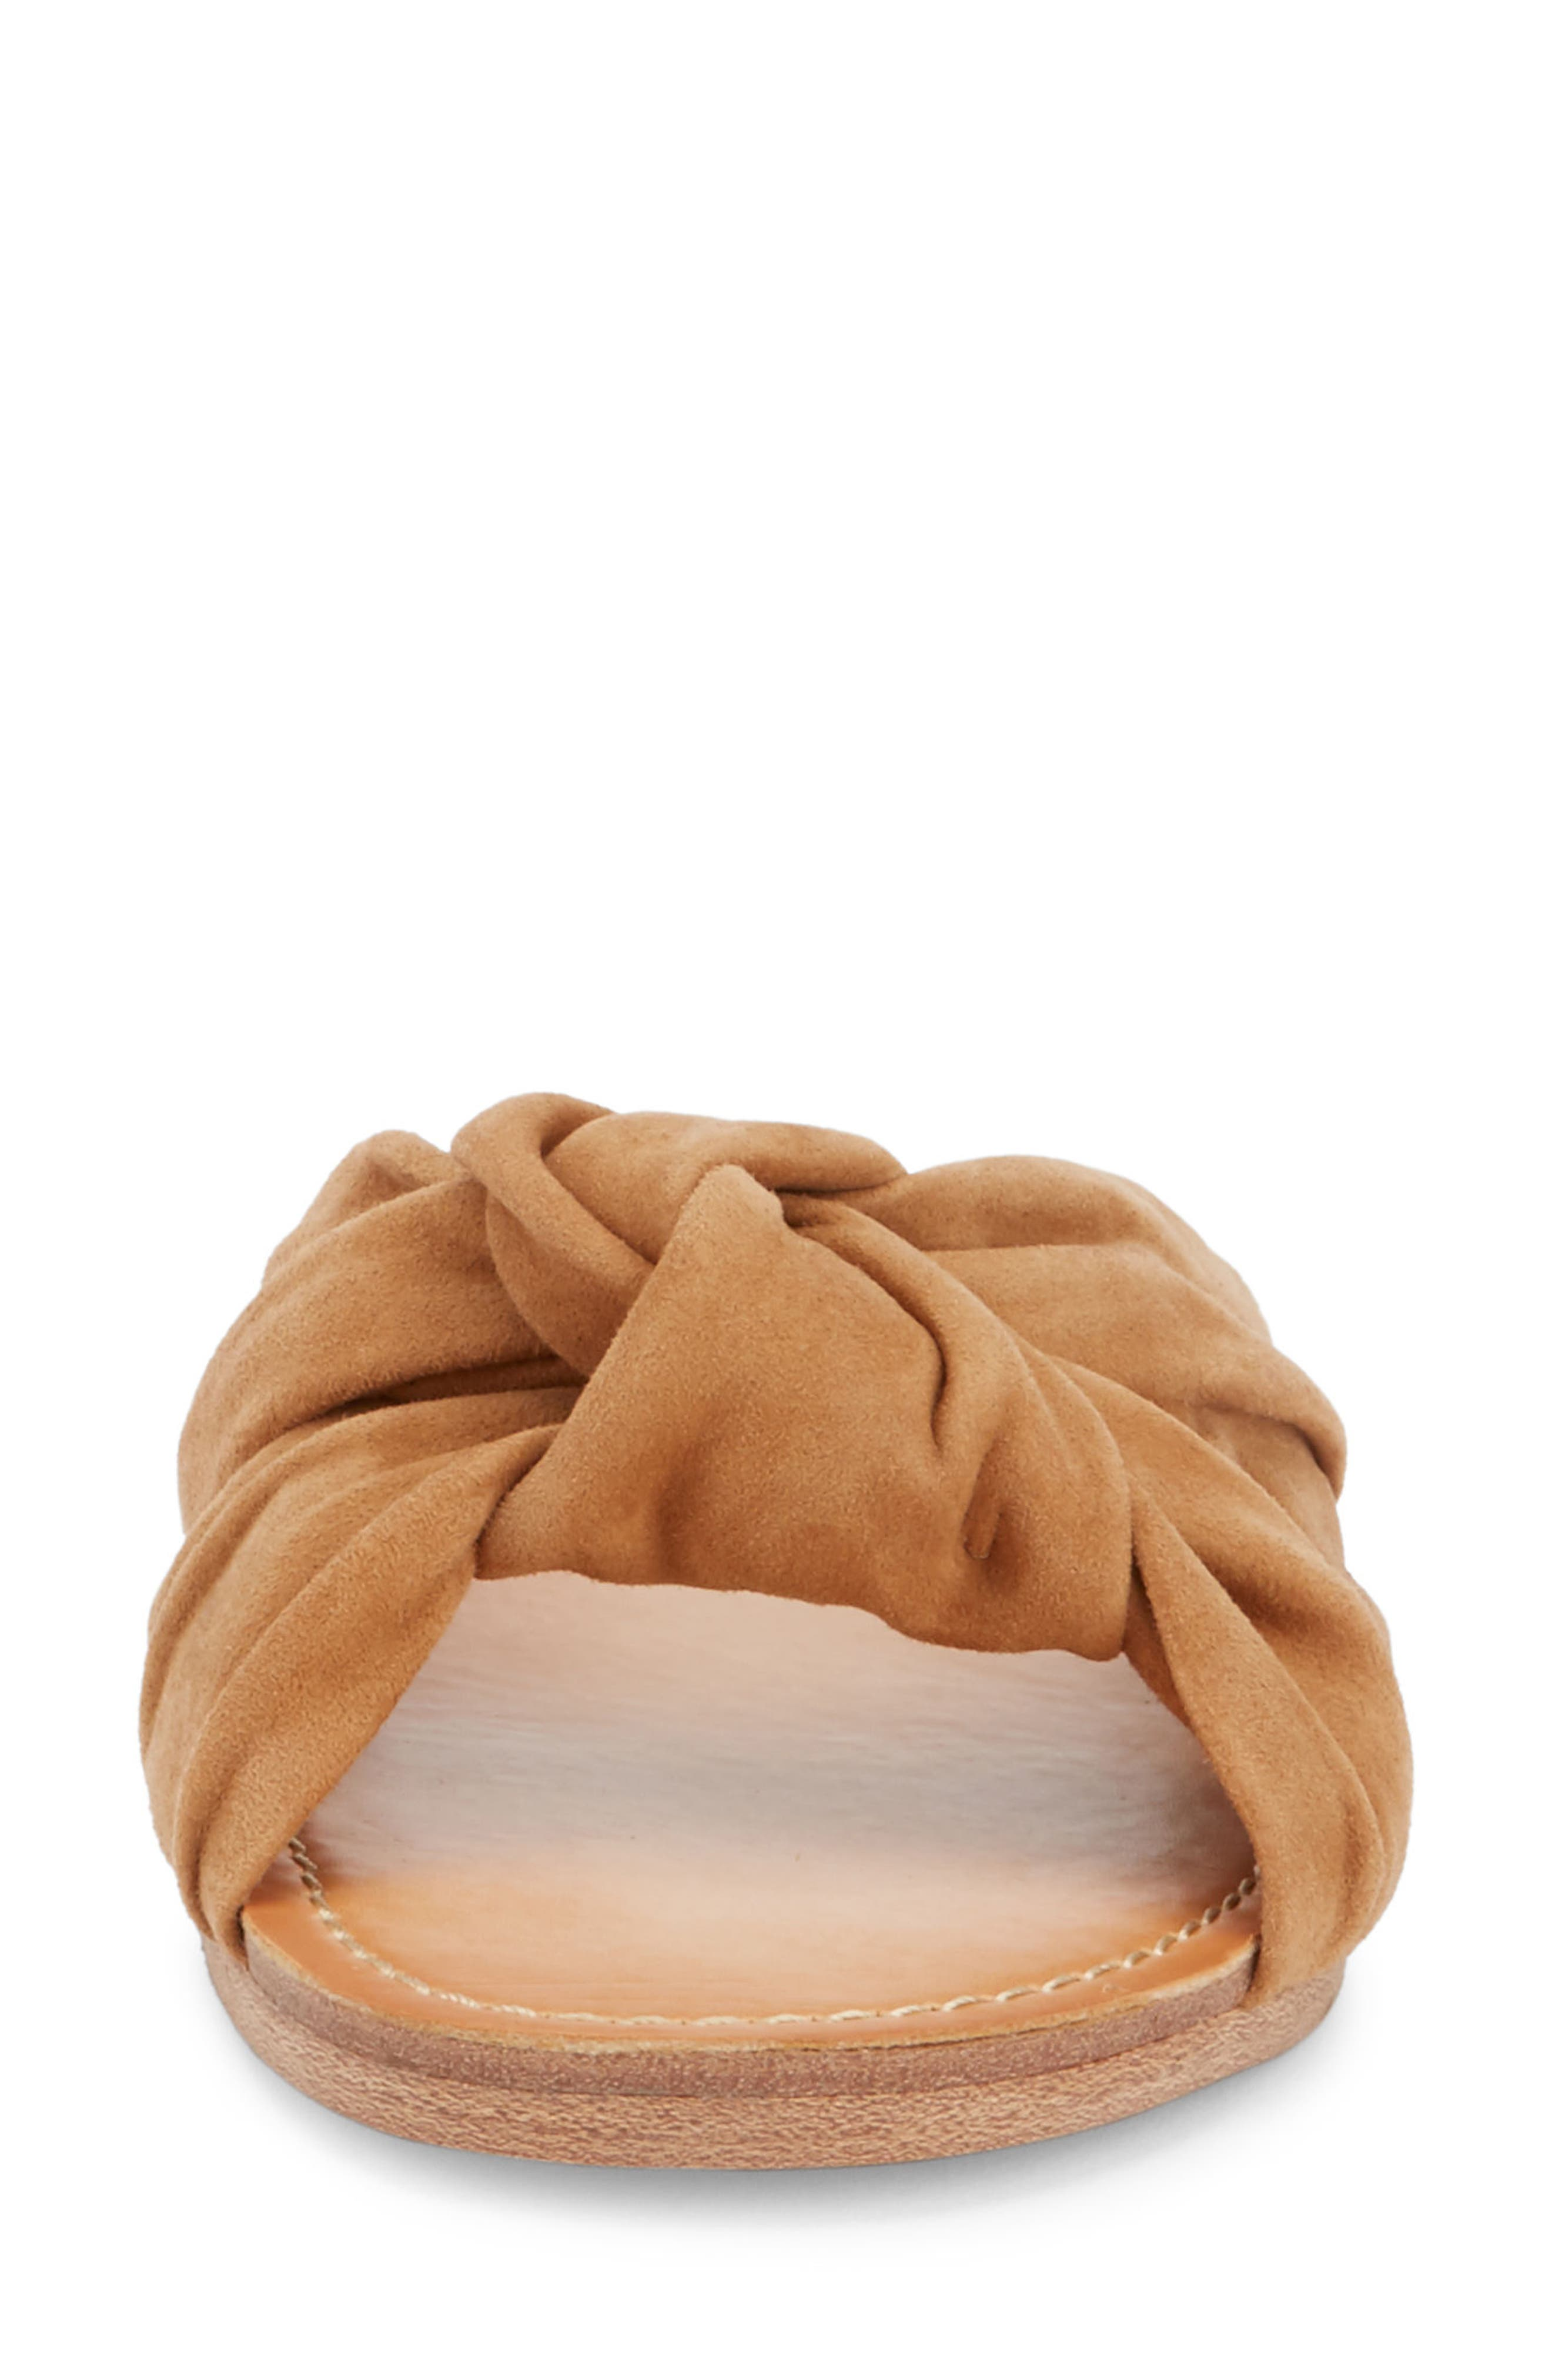 Sophie Knotted Bow Sandal,                             Alternate thumbnail 4, color,                             TAN SUEDE